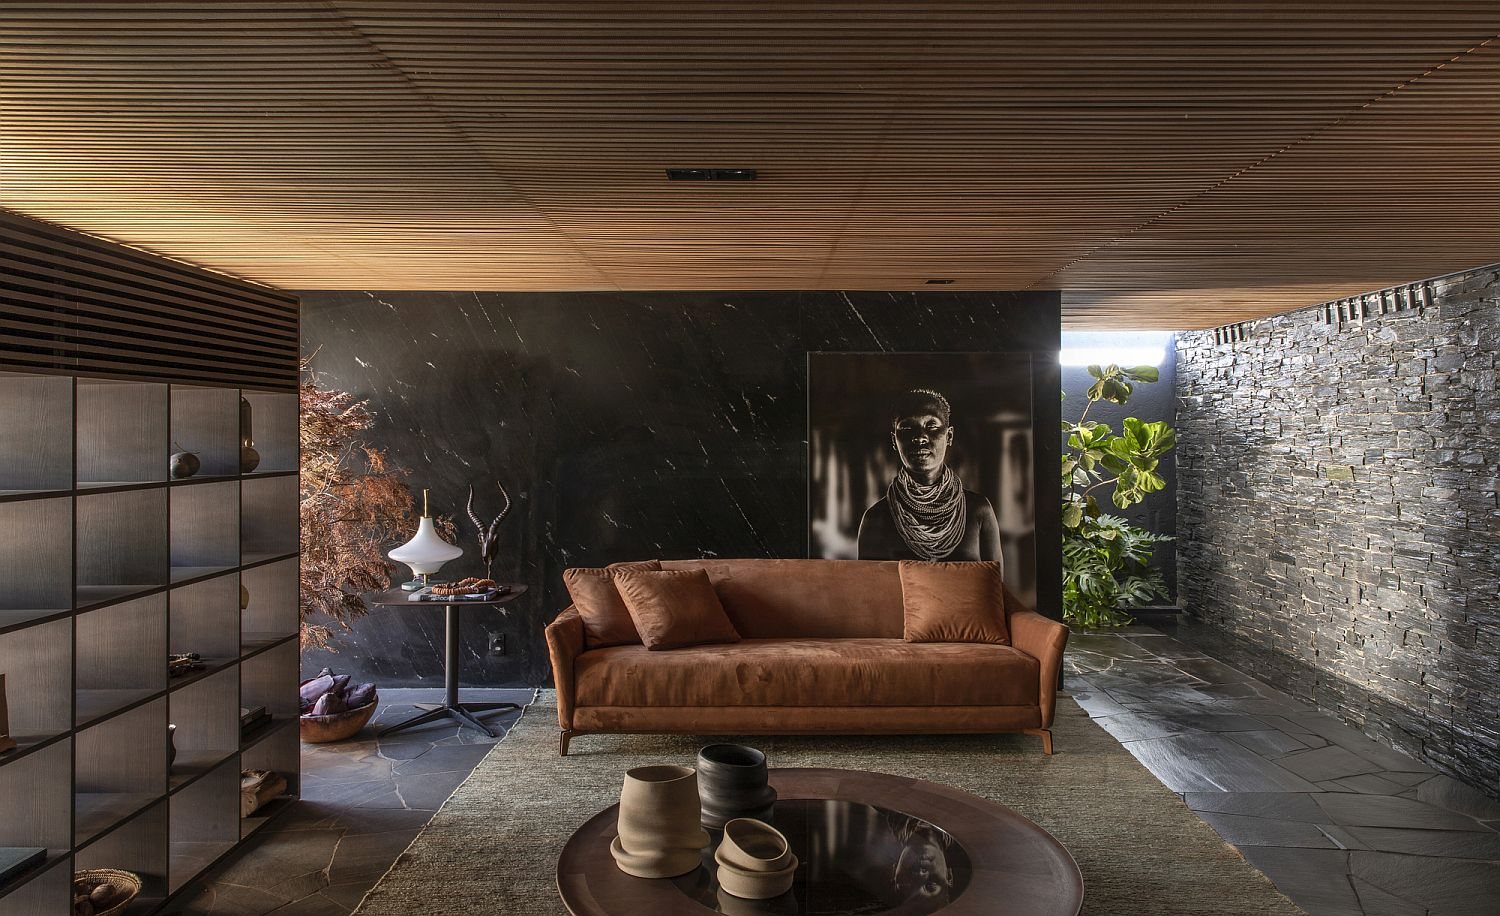 Earthen-tones-wood-and-dark-stone-combined-beautifully-in-the-living-room